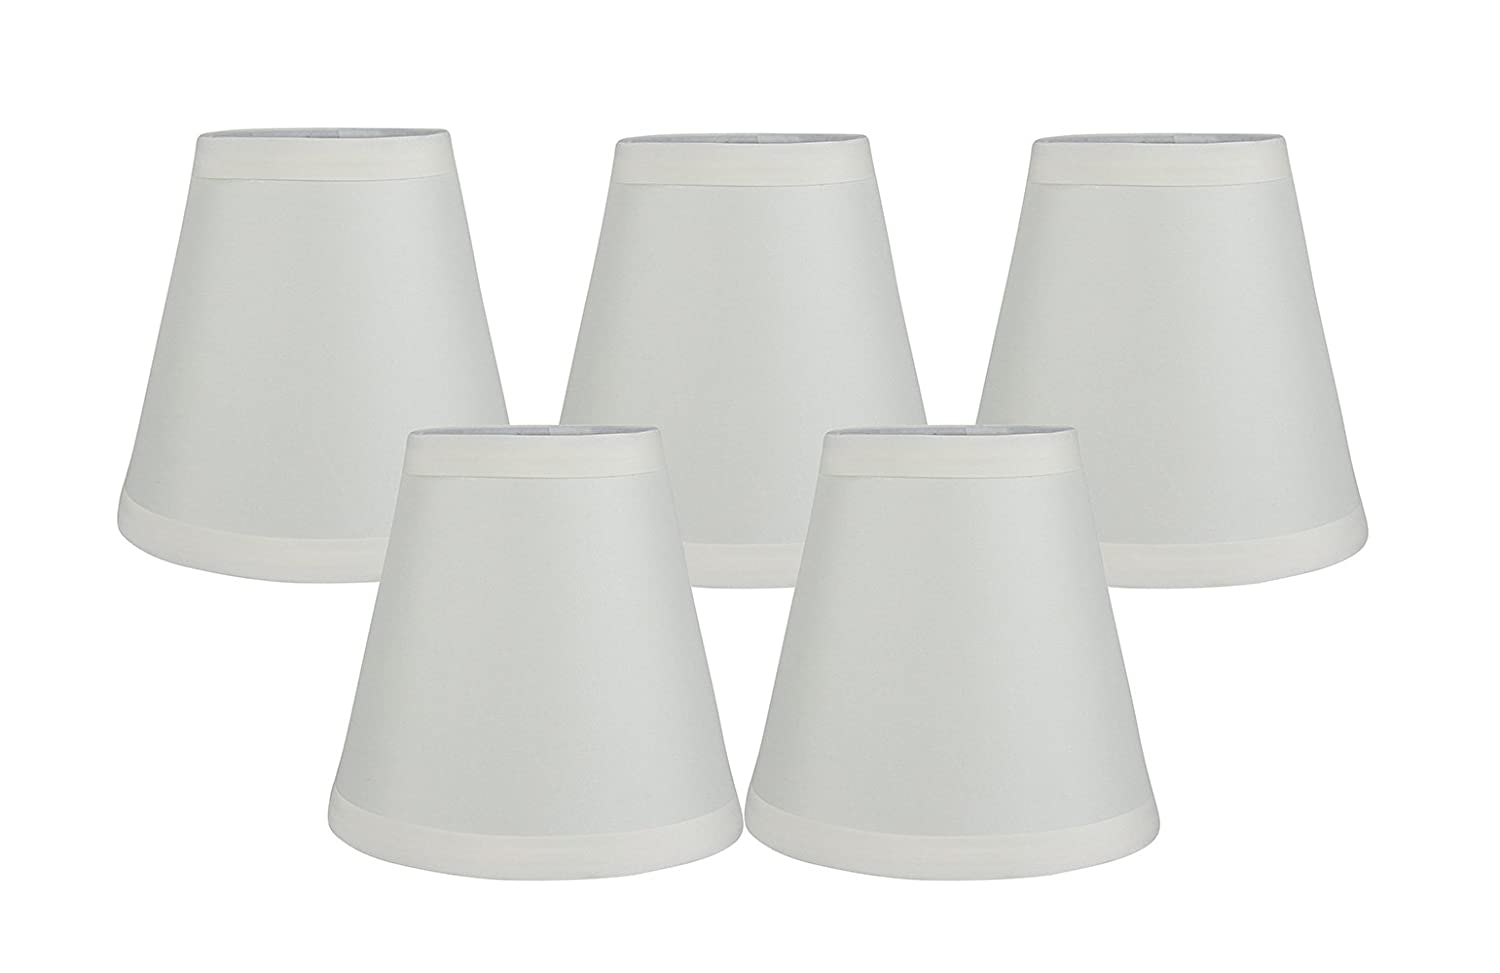 3-inch by 5-inch by 4.75-inch Meriville Set of 5 Eggshell Faux Silk Clip On Chandelier Lamp Shades